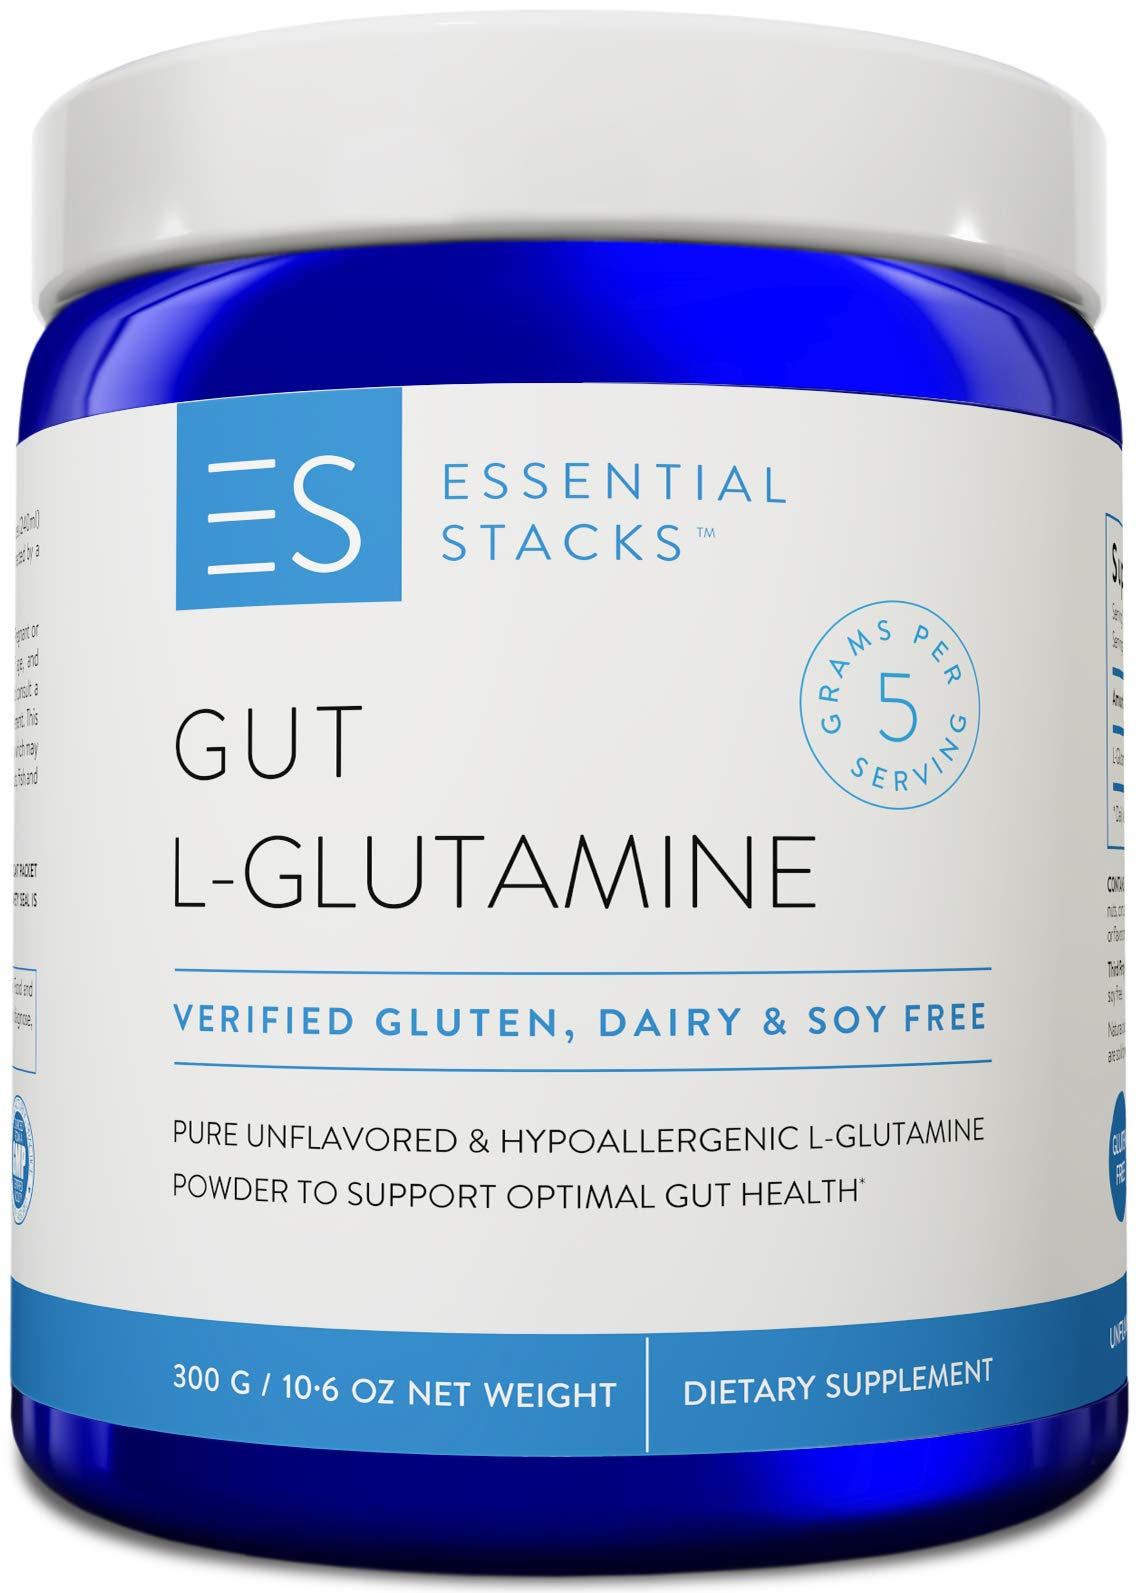 Essential Stacks Gut L-Glutamine Powder - Gluten Free, Dairy Free, Soy Free, Non-GMO & Hypoallergenic with 3rd Party Verified Allergen Testing - Pure Unflavored L Glutamine for Optimal Gut Health by Essential Stacks